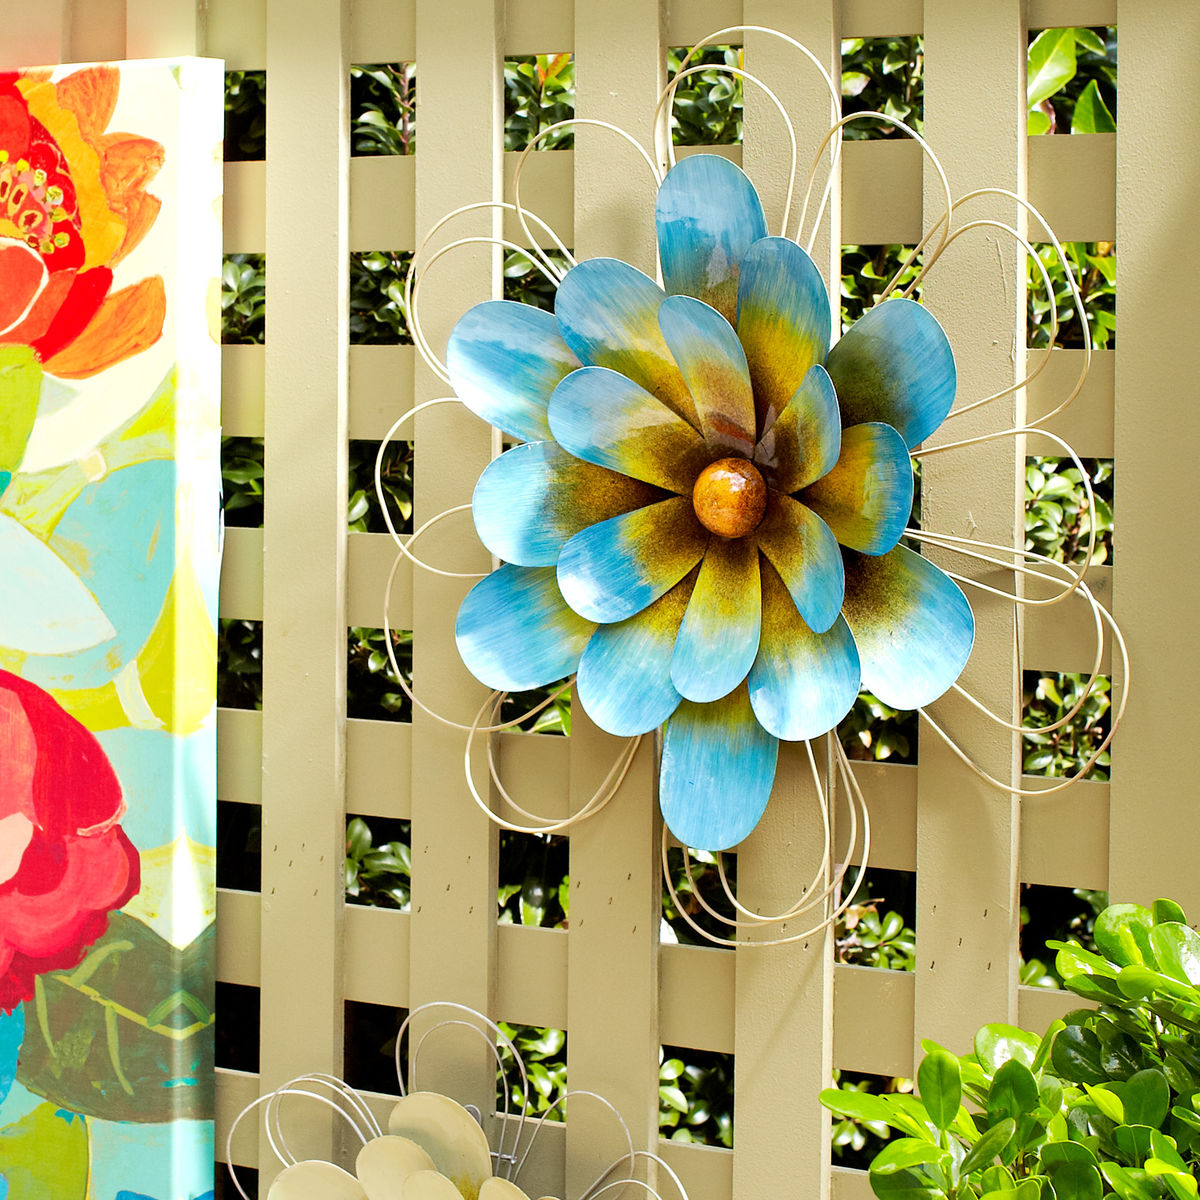 Backyard Fence Decorating Ideas with dark wooden fence decoration ideas outdoor fence decorations Outdoor Wall Fence Art Metal Flower Hang On Fence Decorate Fence Vinyl Pvc Wood Aluminum